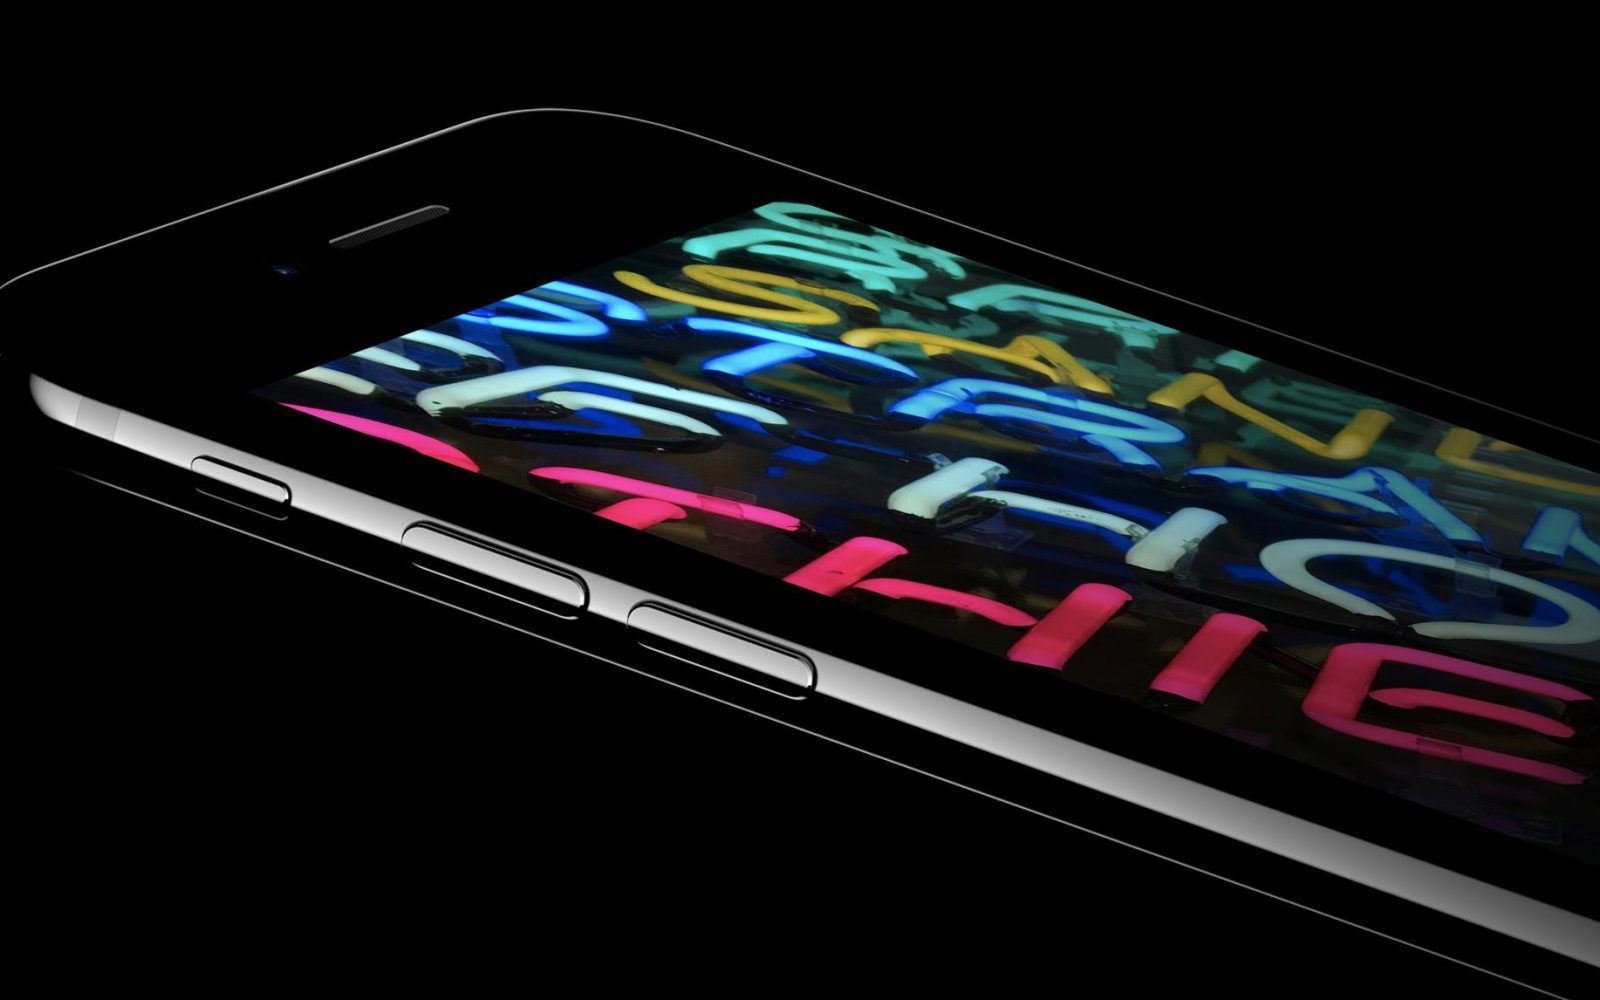 Apple reportedly orders 70M bendable OLED displays from Samsung for iPhone 8